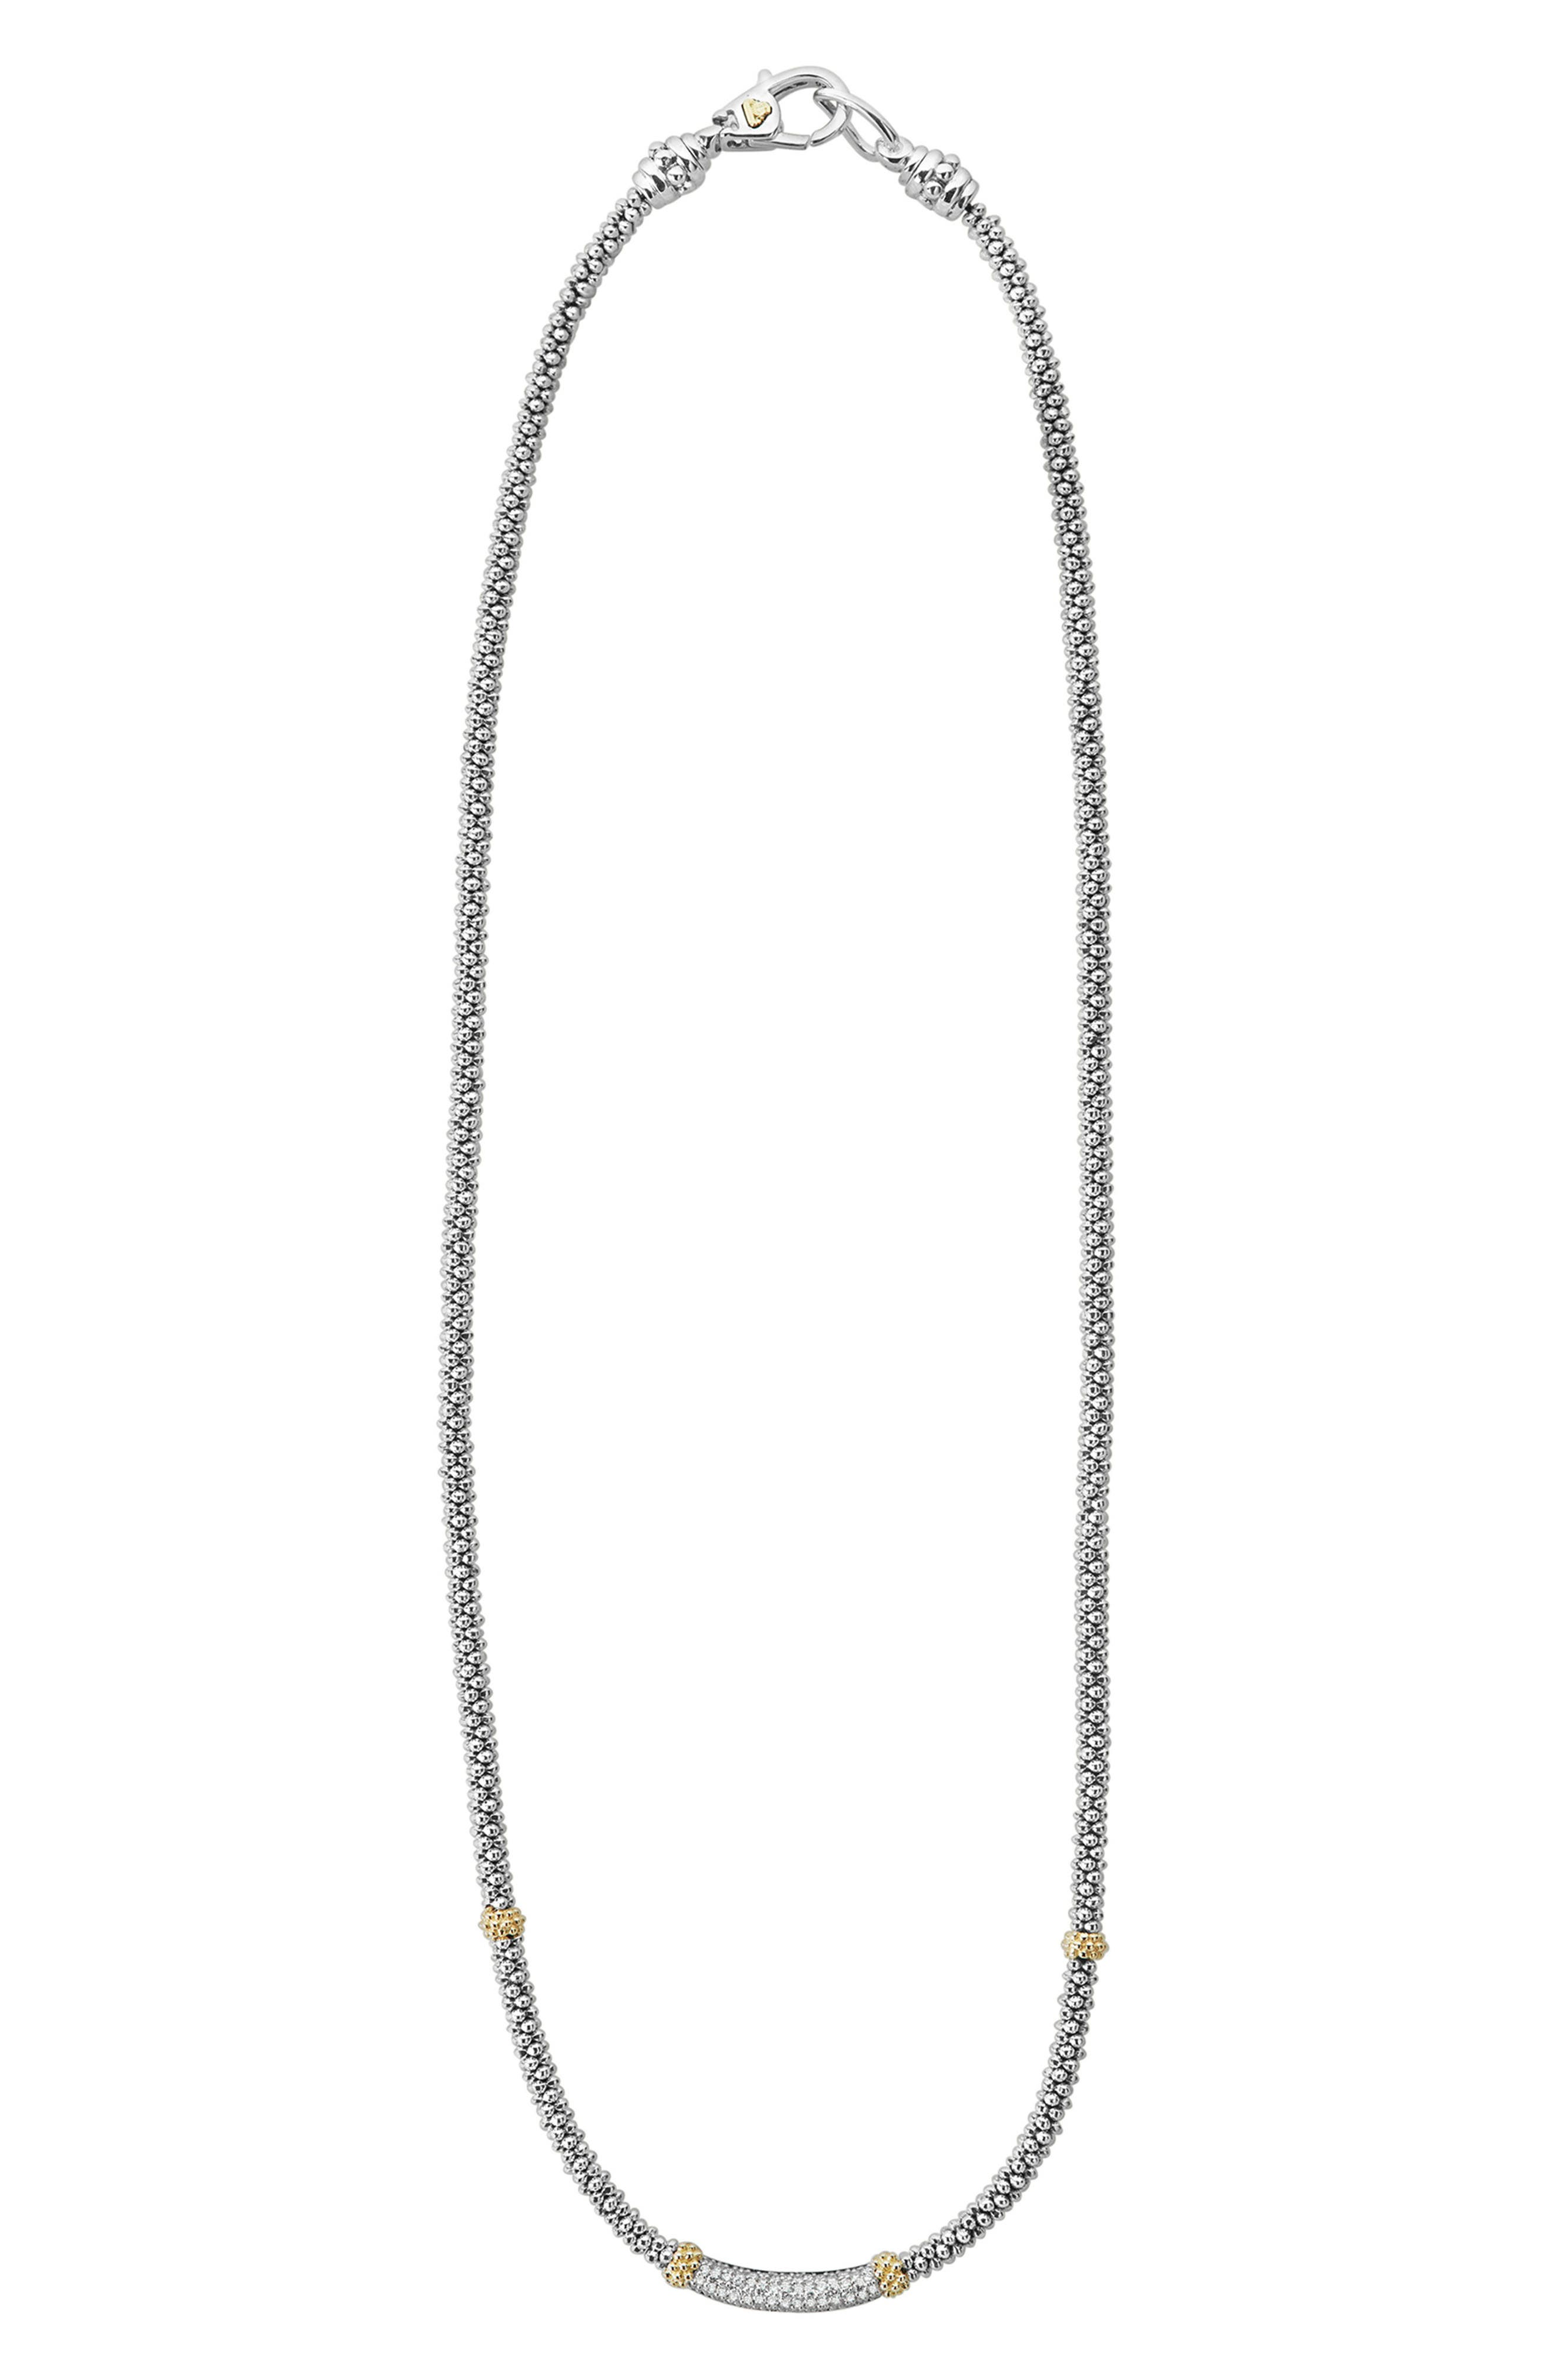 Lux Diamond Rope Necklace,                         Main,                         color, Silver/ Diamond